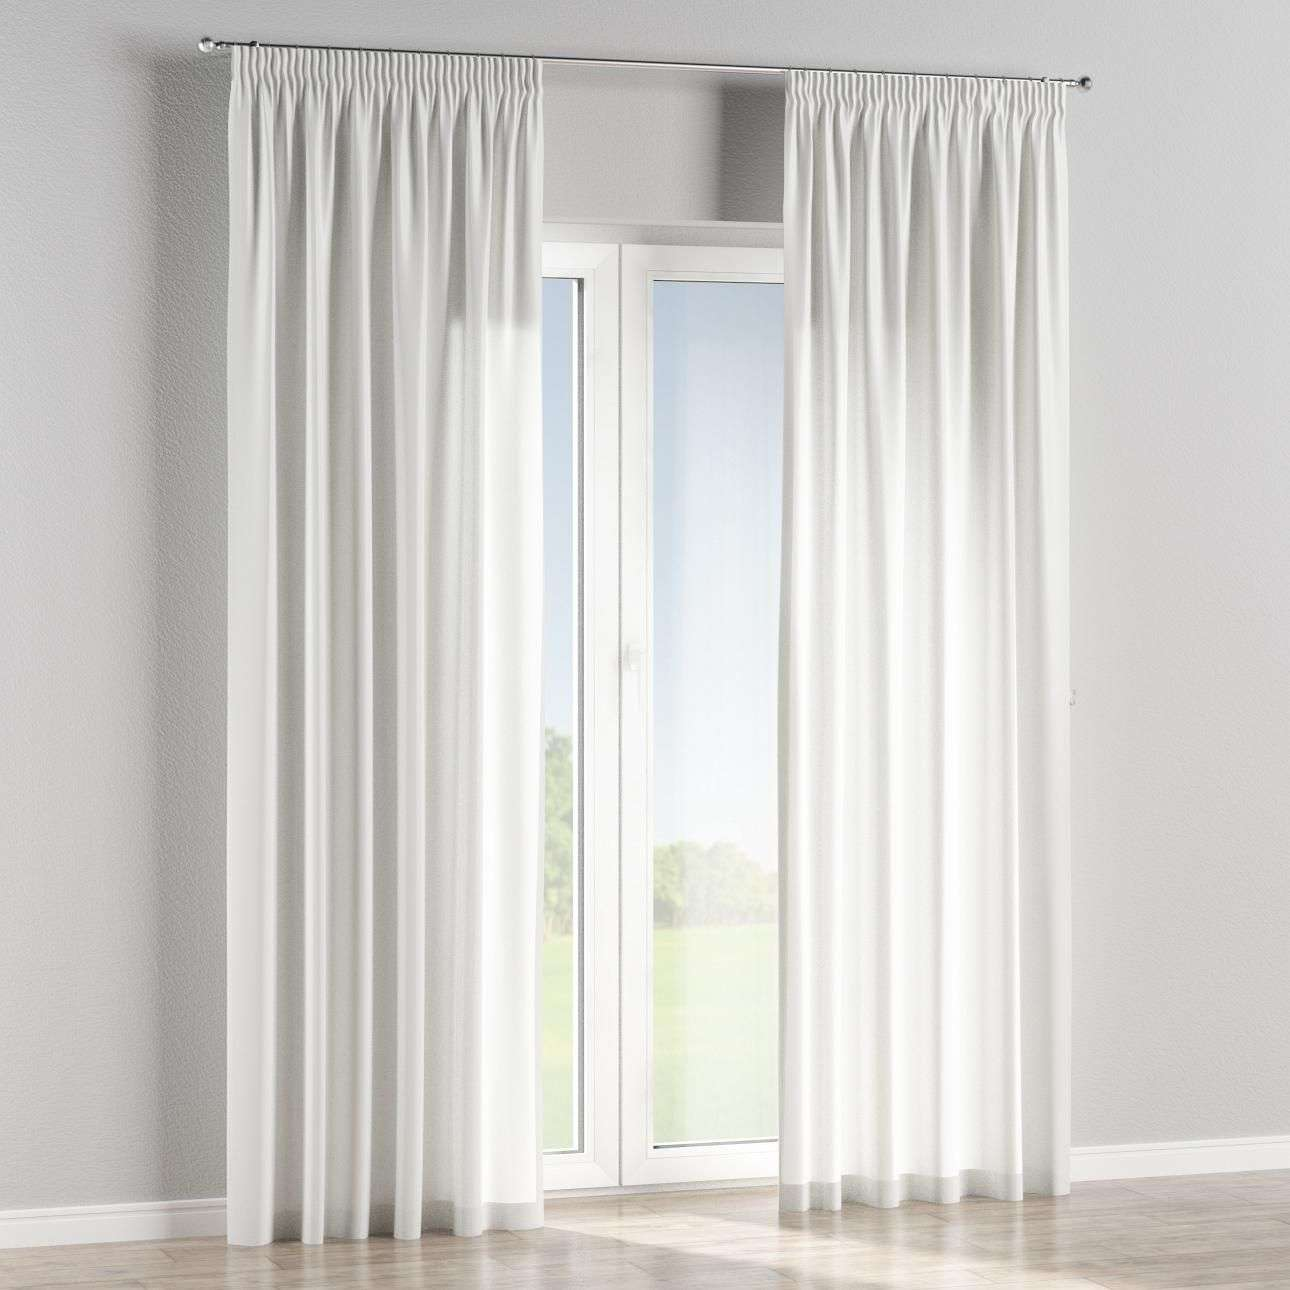 Pencil pleat lined curtains in collection Cardiff, fabric: 136-30